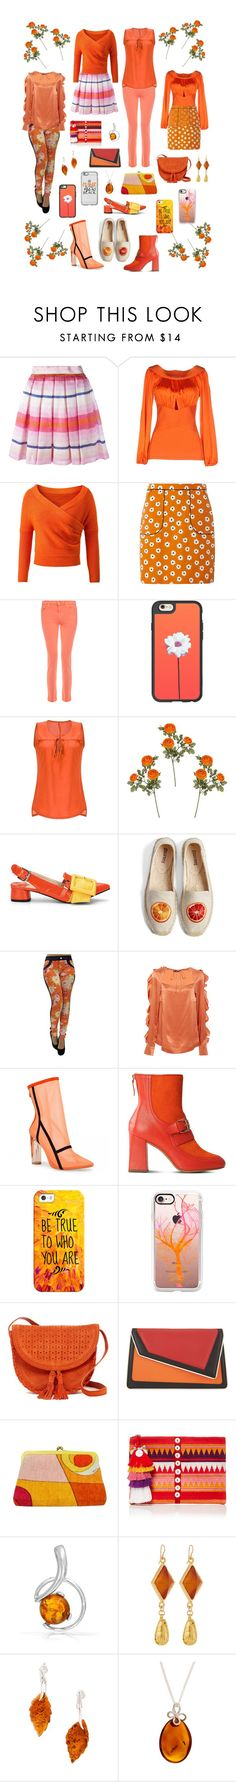 """""""Orange is ..."""" by alexxa-b-charles ❤ liked on Polyvore featuring Daizy Shely, Blumarine, Dorothy Perkins, J Brand, Casetify, Soludos, Marissa Webb, Boutique Moschino, Shiraleah and âme moi"""